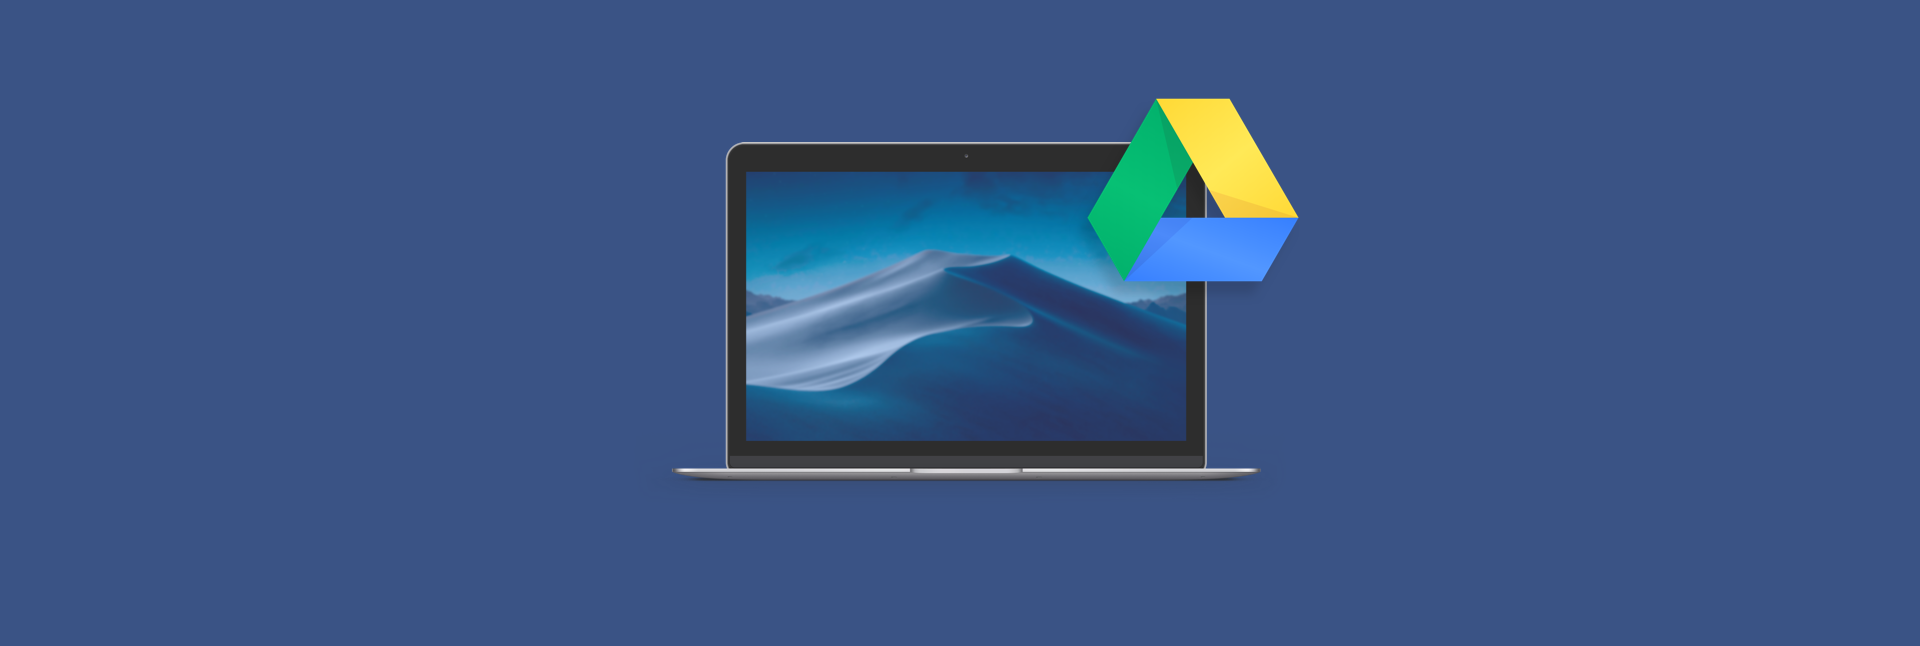 A Complete Guide To Google Drive Sync For Mac – Setapp